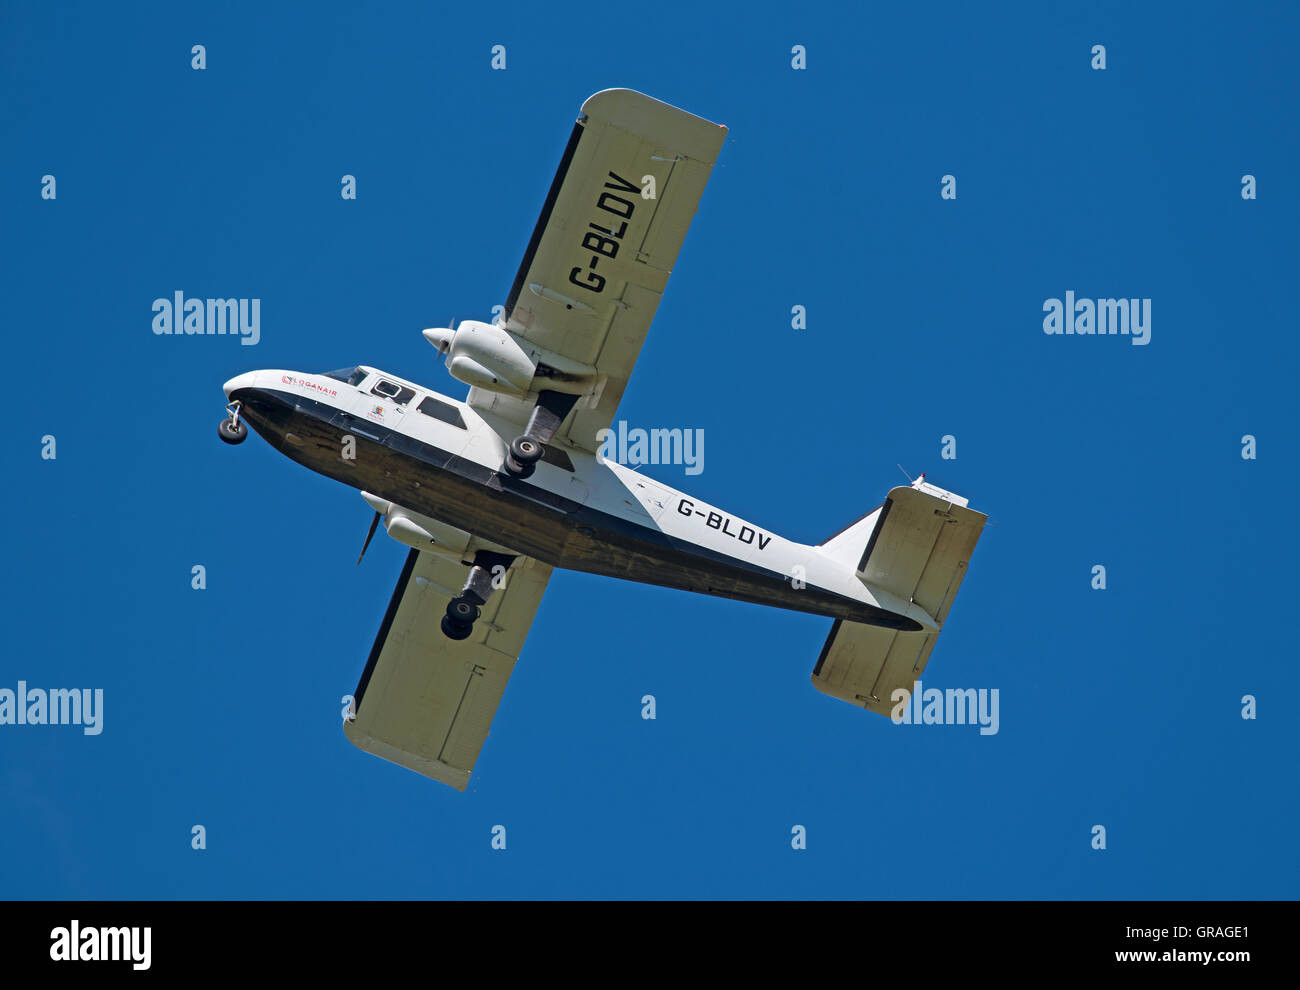 Britten-Norman BN2B-26 Islander twin engine light propellor aircraft operated by Loganzir in Scotland.  SCO 11,227. - Stock Image